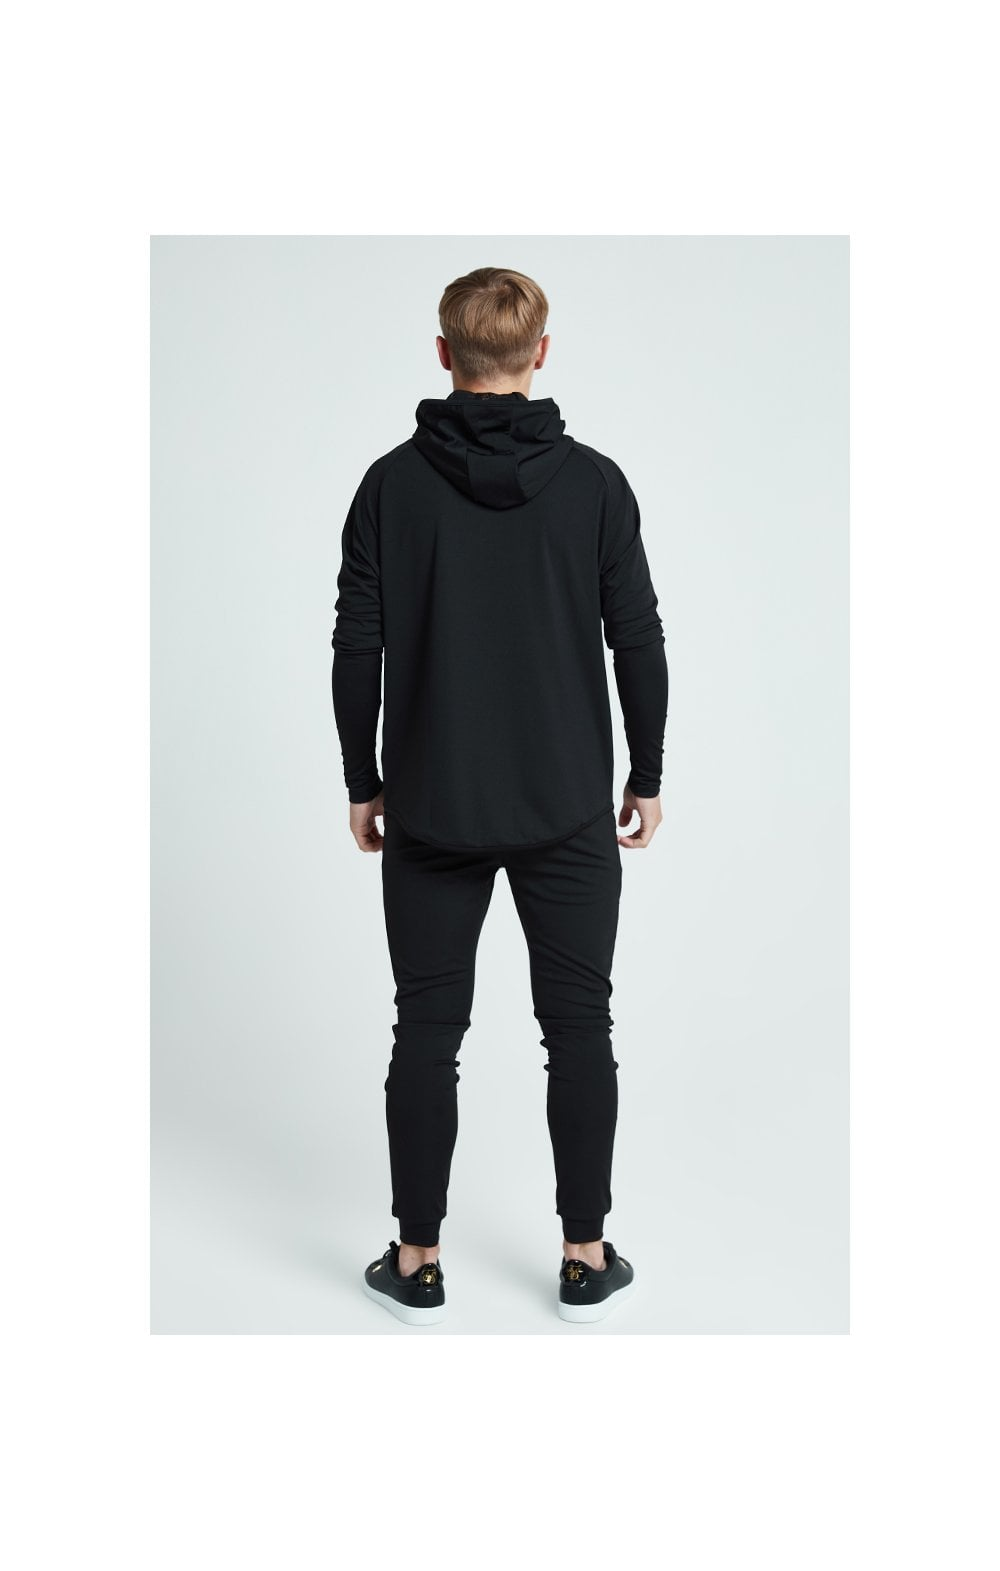 Load image into Gallery viewer, Illusive London Core Athlete Hoodie - Black (4)